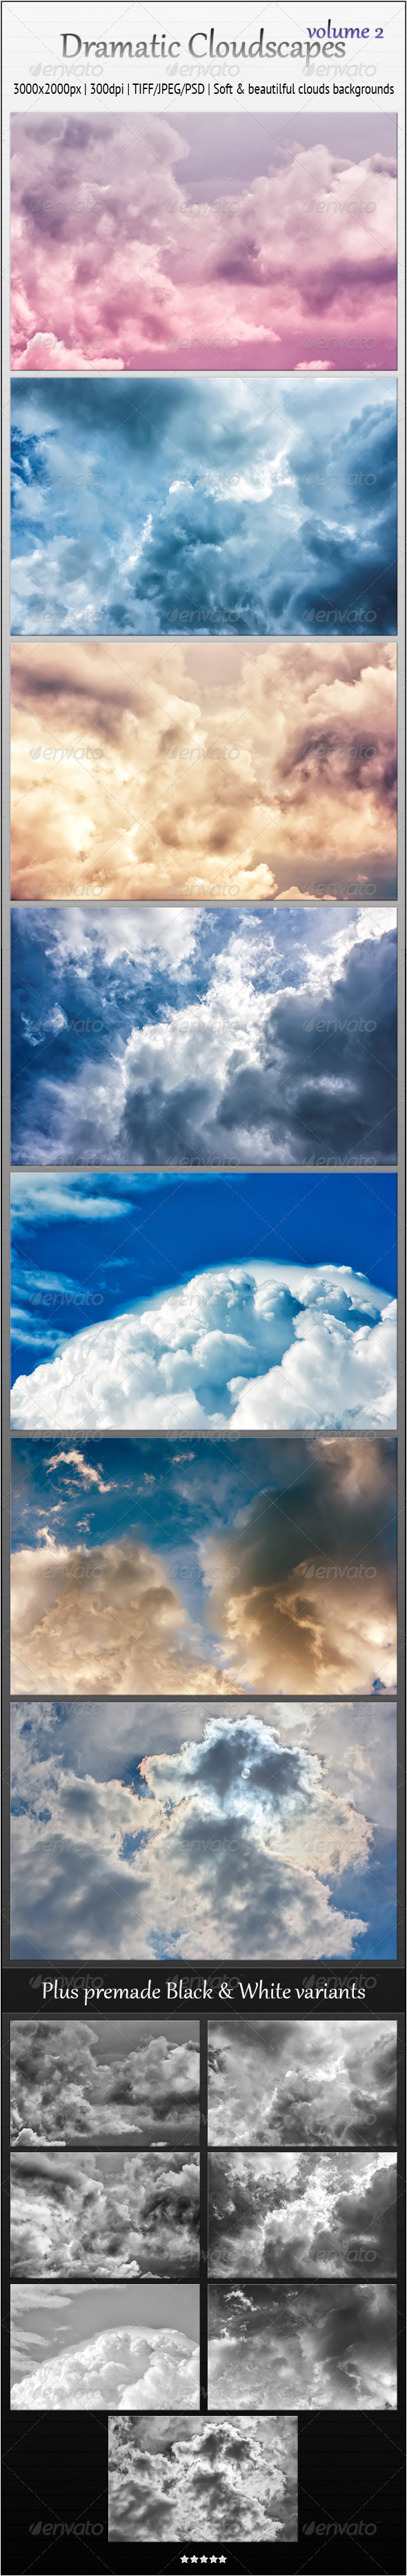 Dramatic Cloudscapes, Vol. 2 - Soft Backgrounds - Nature Backgrounds